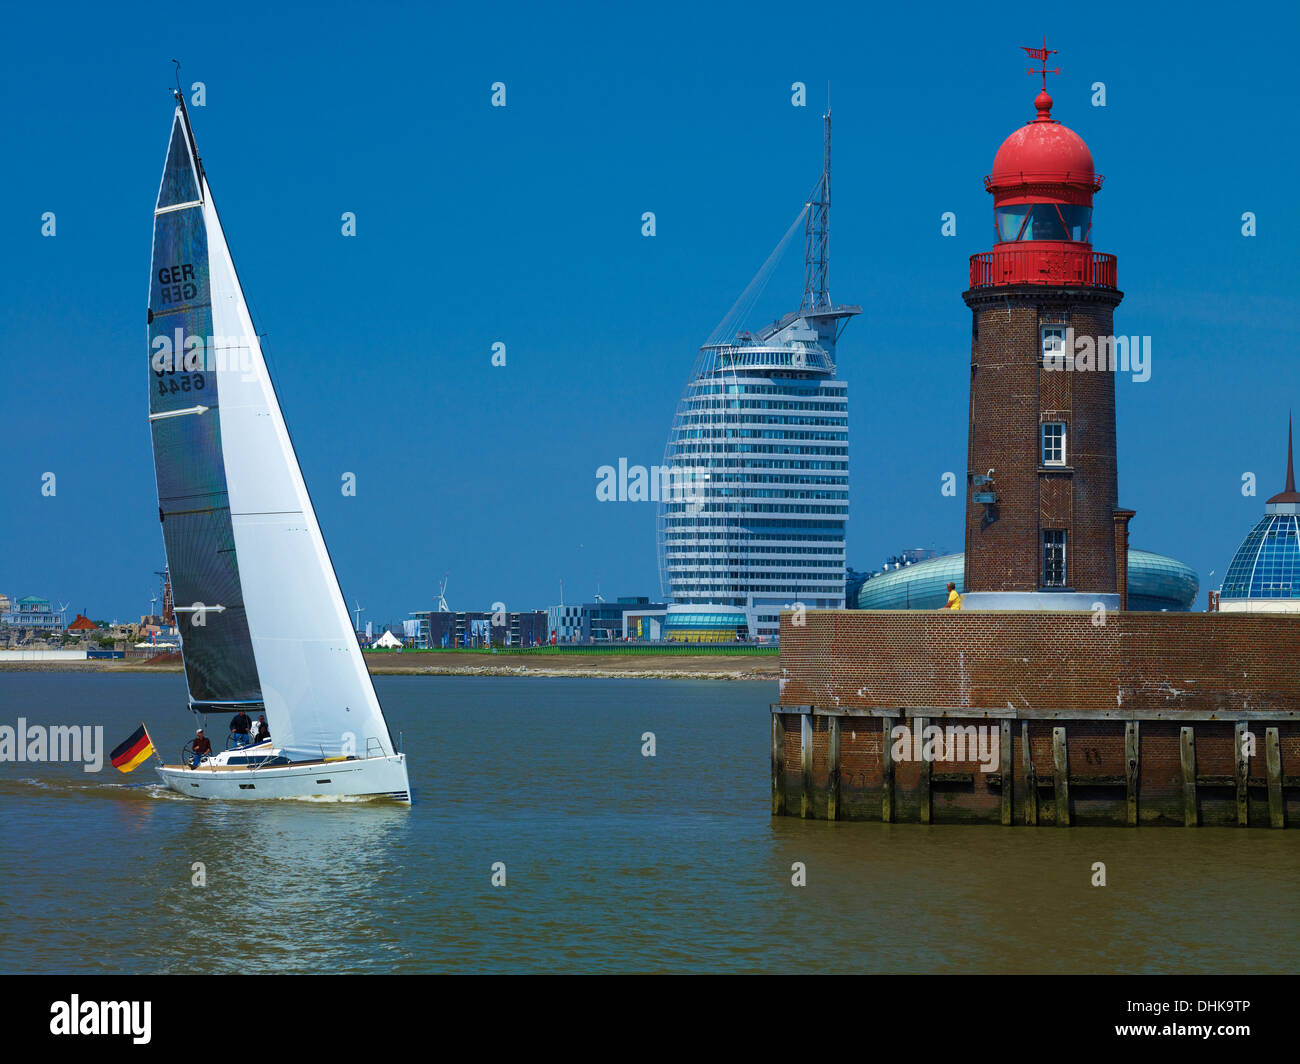 Lighthouse at the Geestemünde with Atlantic Hotel Sail City, Klimahaus and Mediterraneo, Bremerhaven, Bremen, Germany - Stock Image